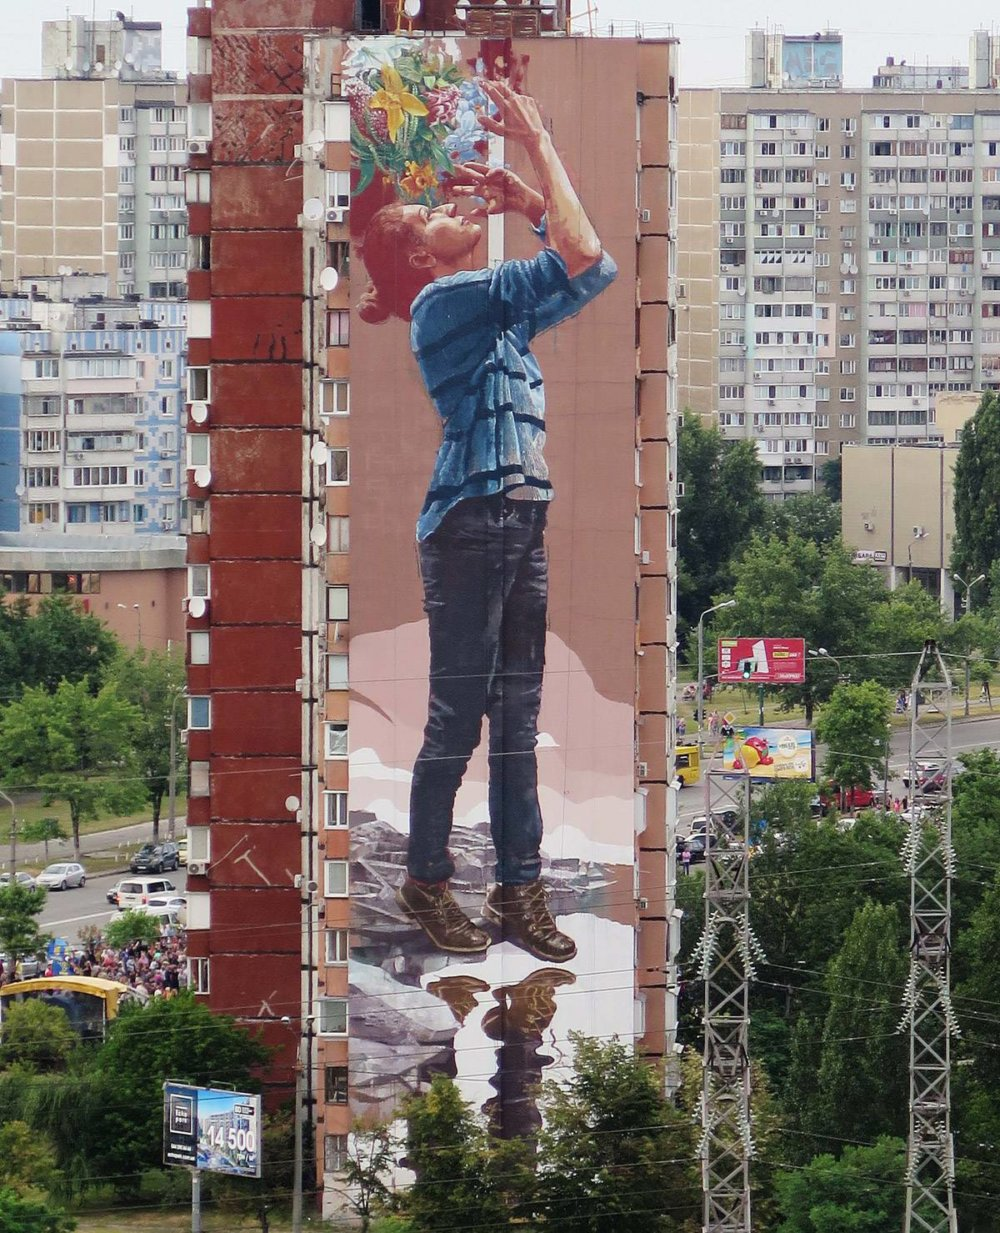 Magnificent Giant Photo Realistic Murals That Portray Political And Social Issues By Fintan Magee 3